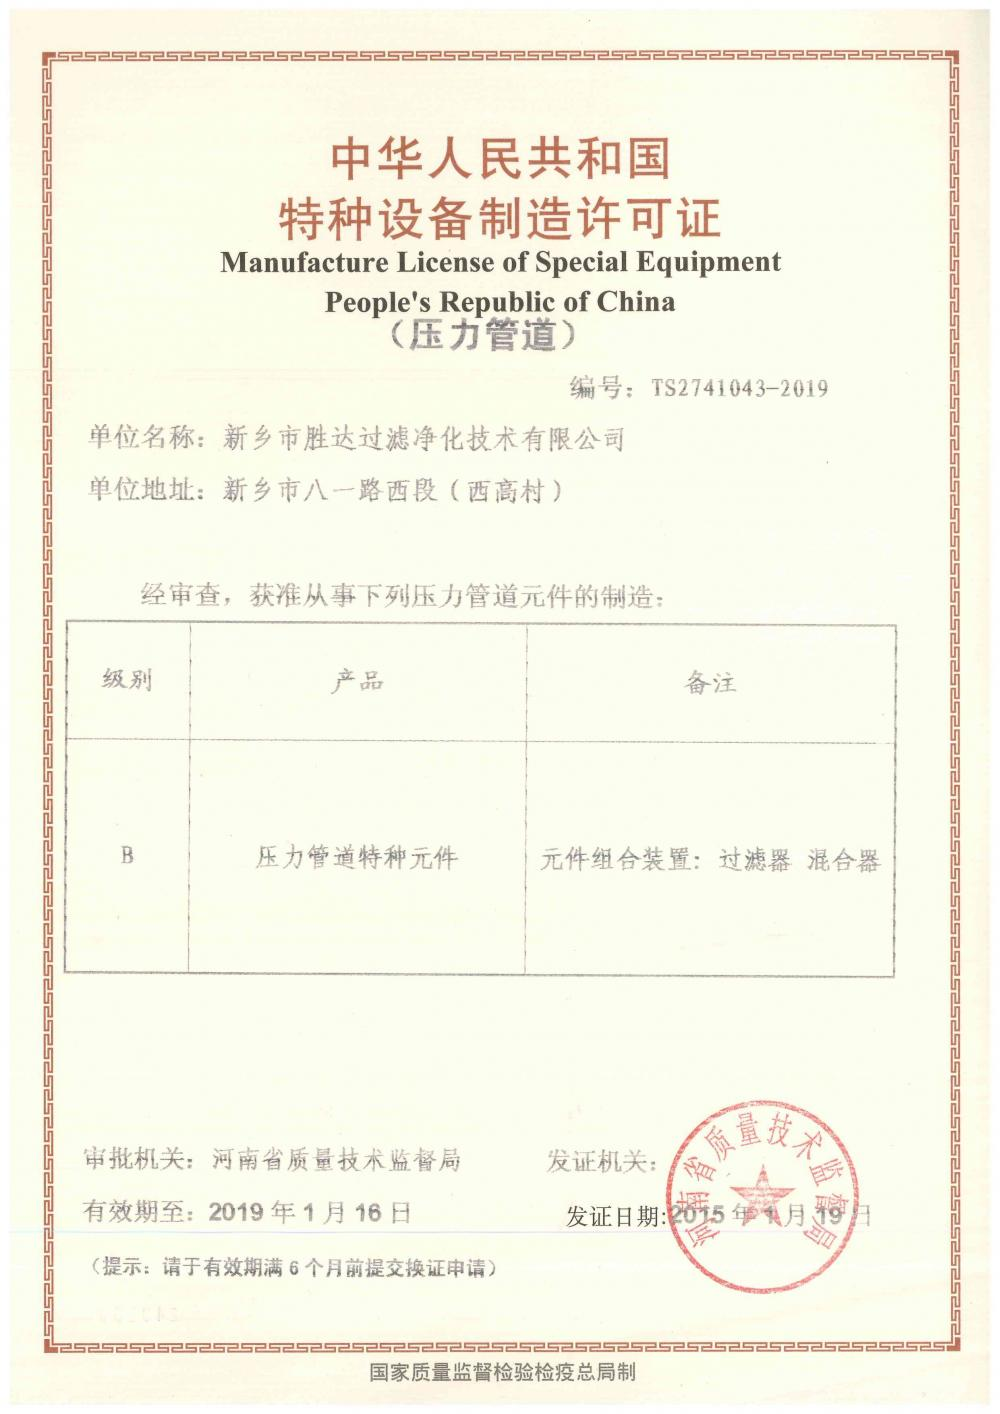 Manufacture License Of Special Equipment Pressure Piping